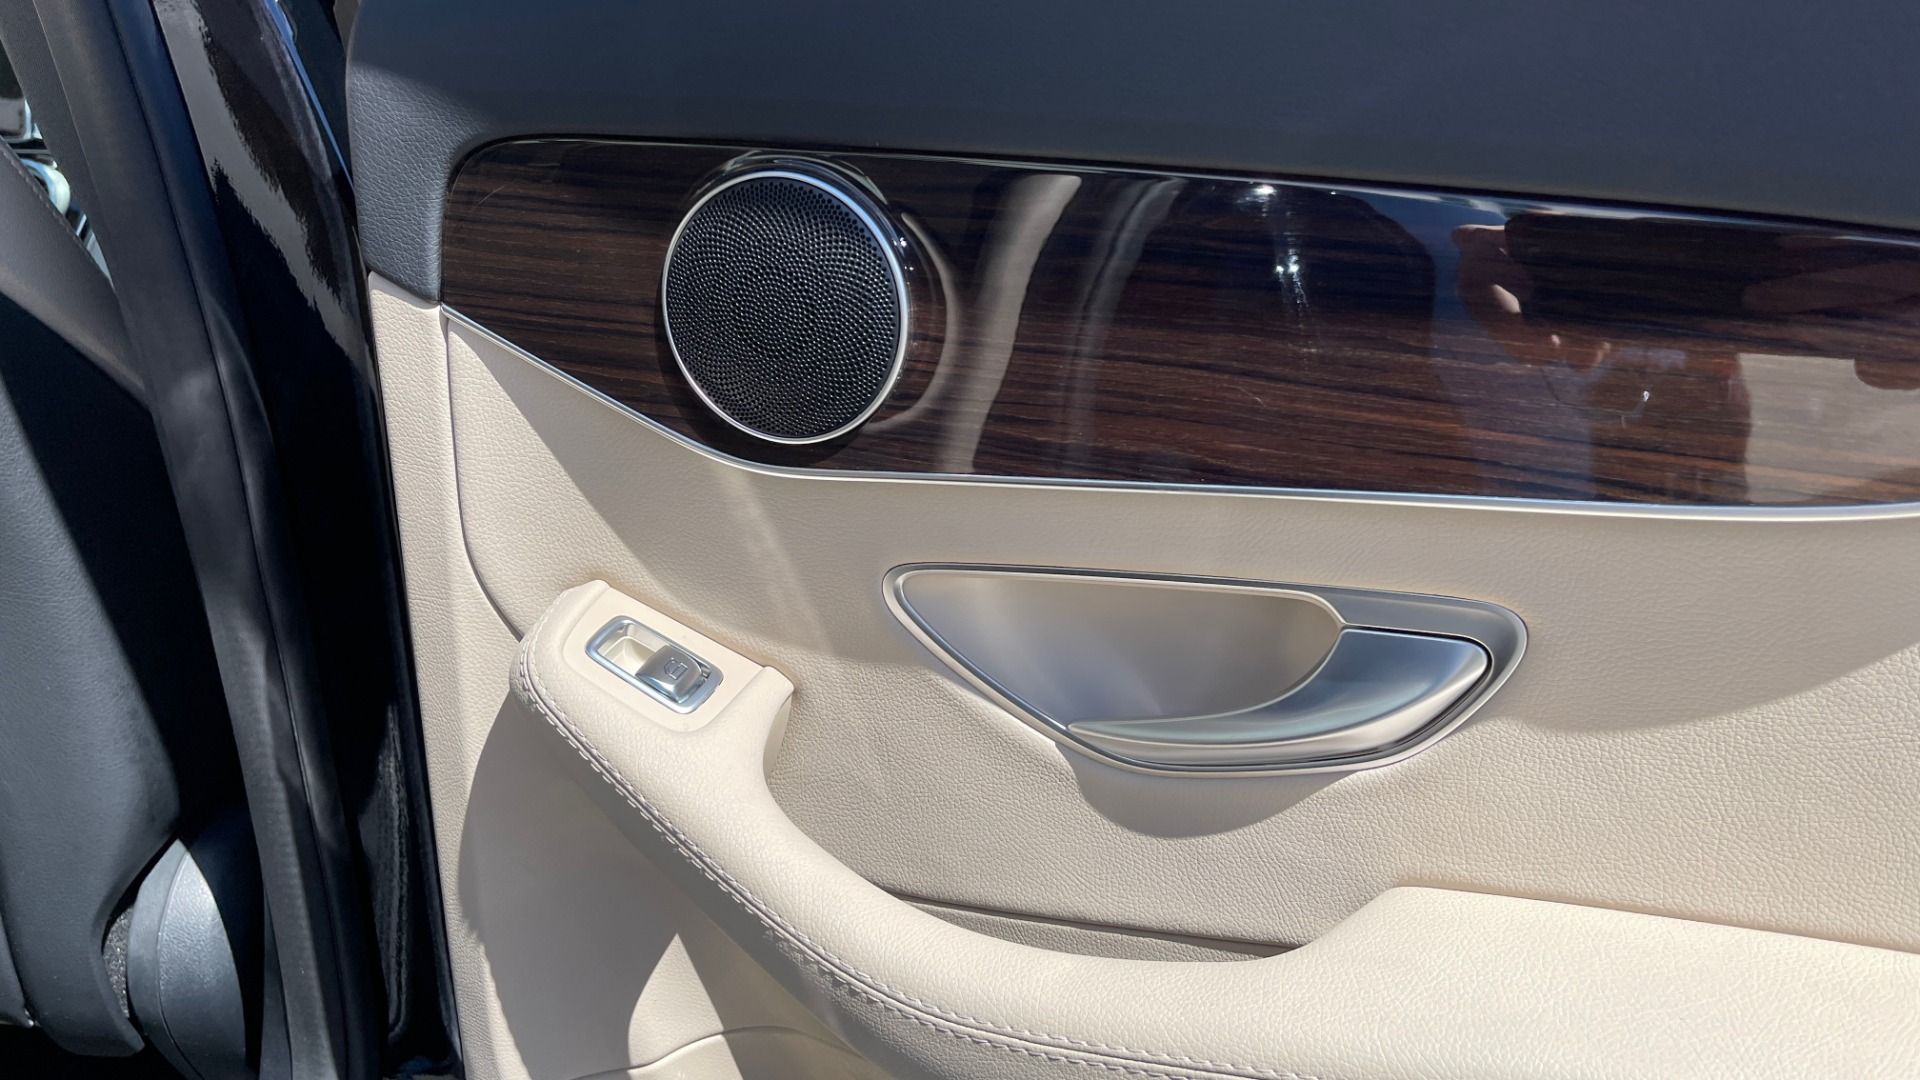 Used 2018 Mercedes-Benz C-CLASS C 300 PREMIUM / APPLE CARPLAY / SUNROOF / REARVIEW for sale $31,995 at Formula Imports in Charlotte NC 28227 51